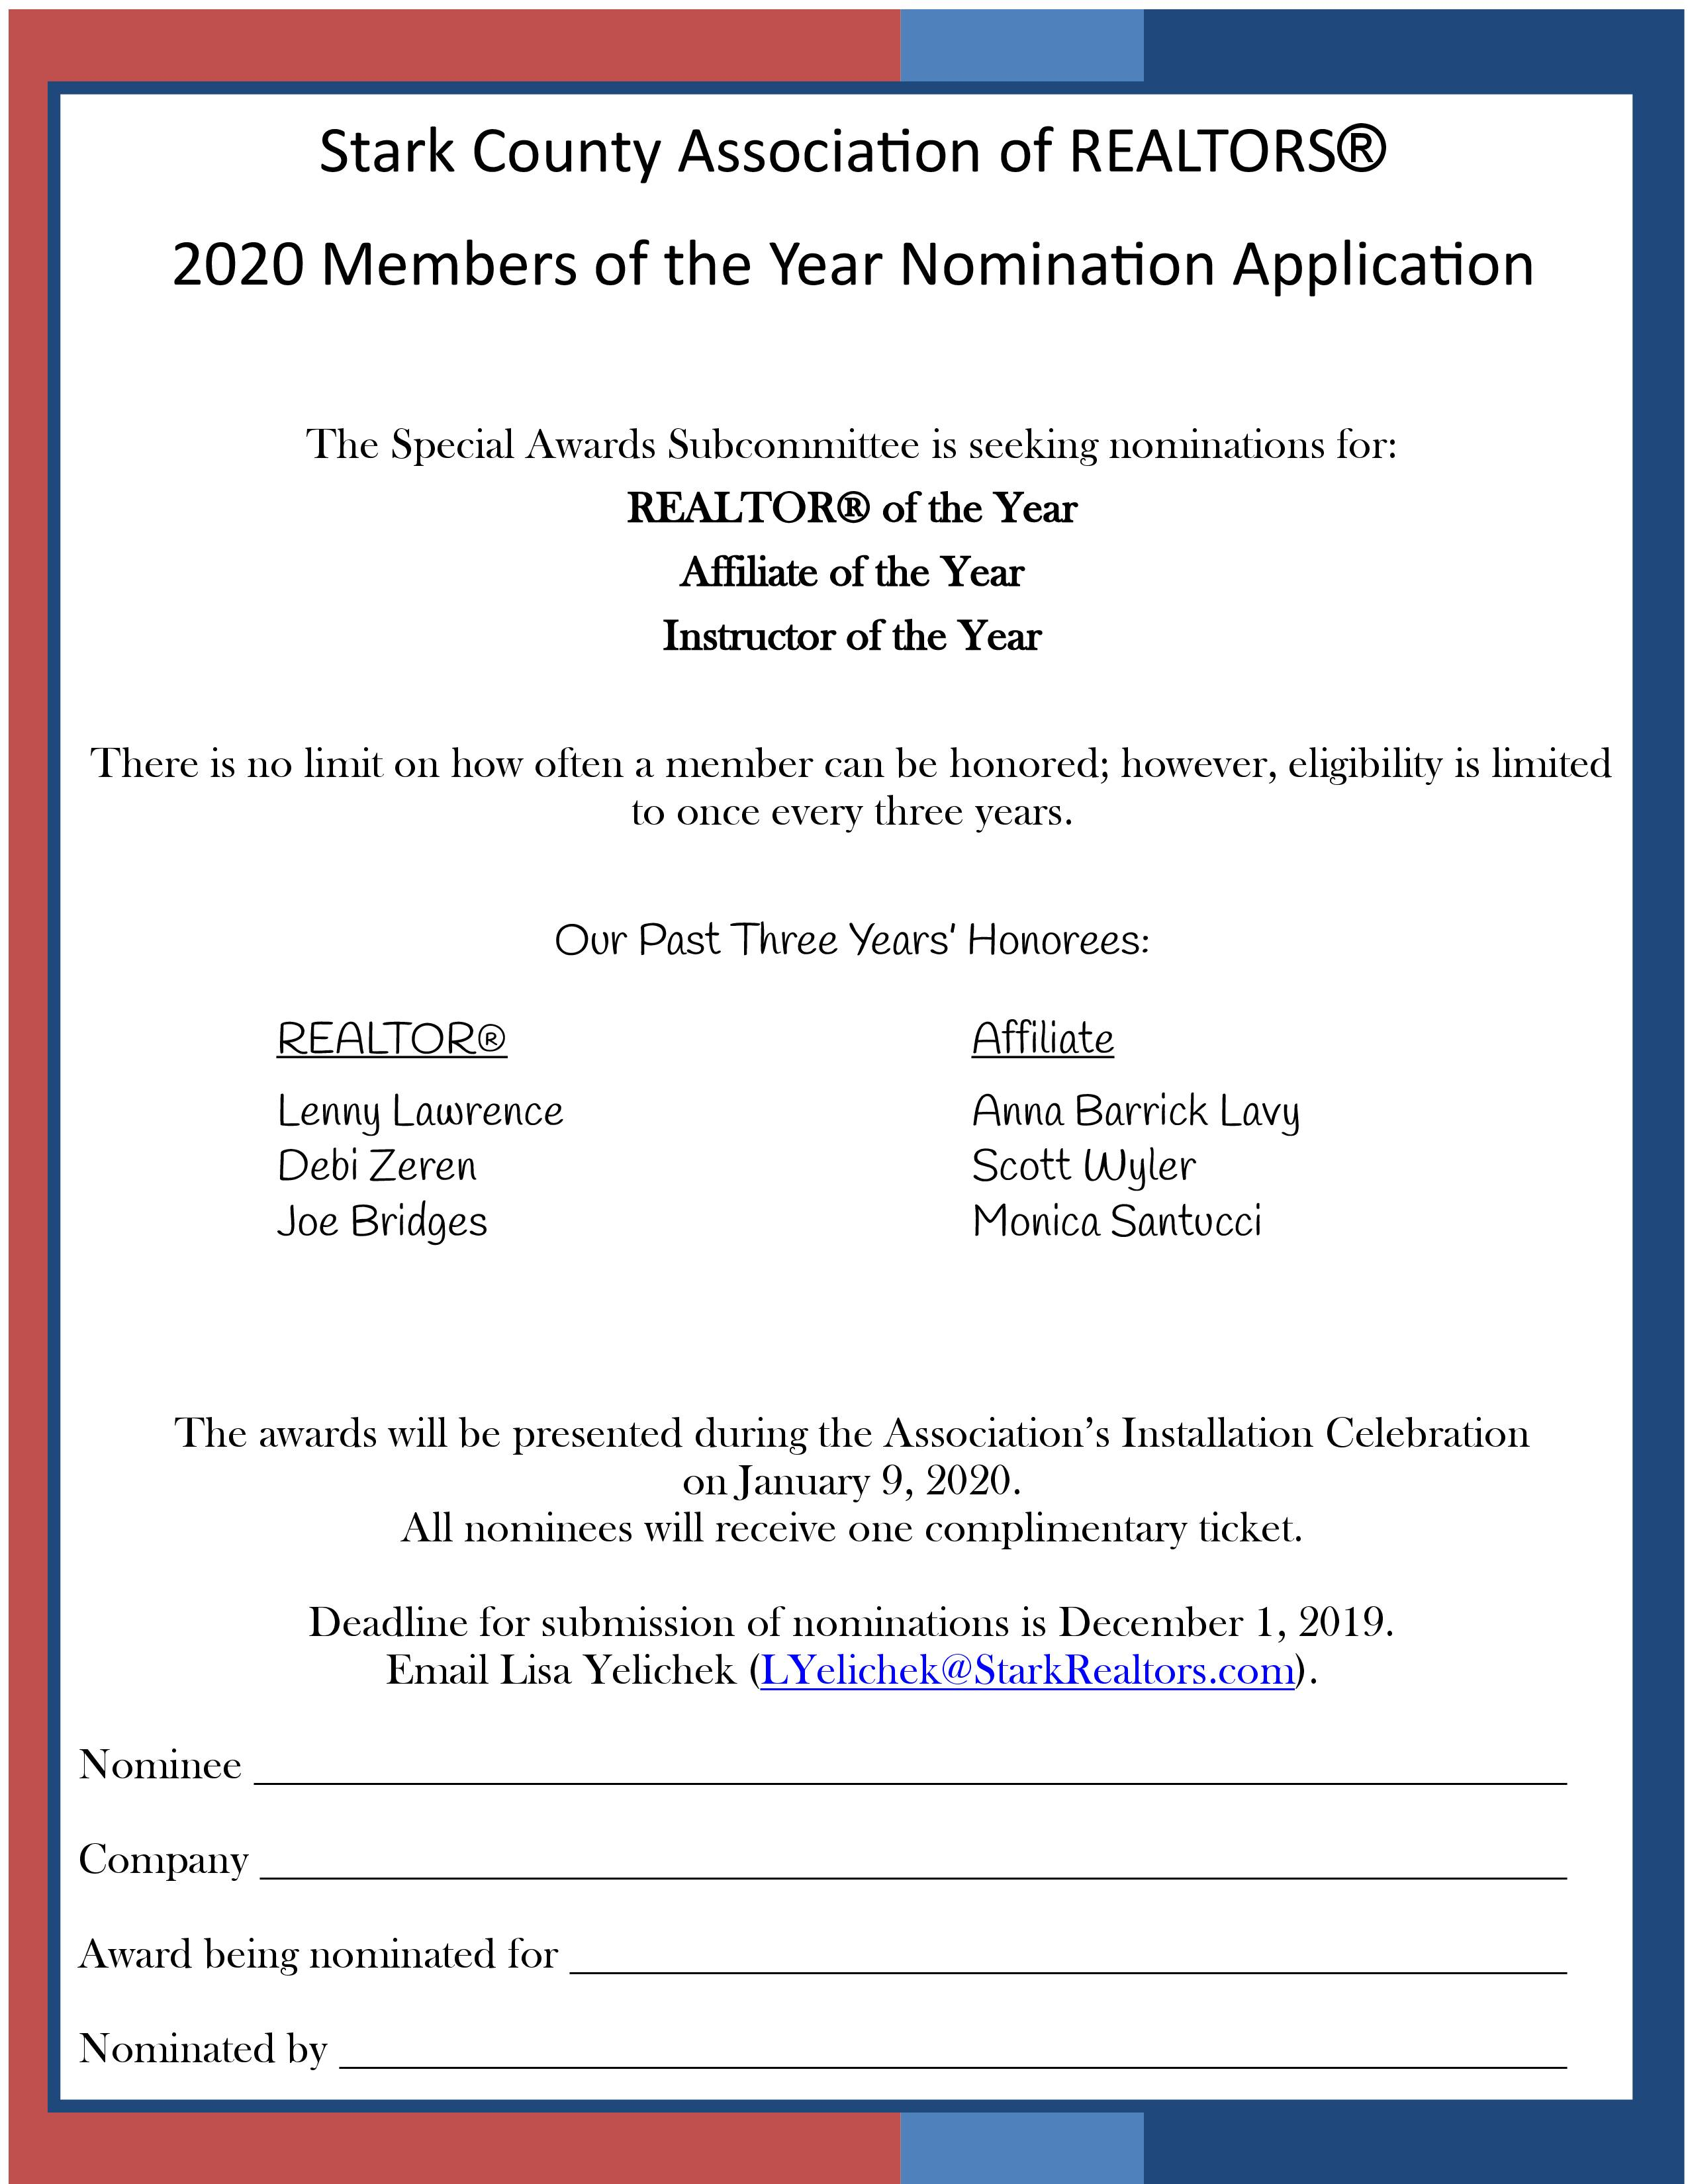 Nominate a SCAR Member for 2020 Member of the Year